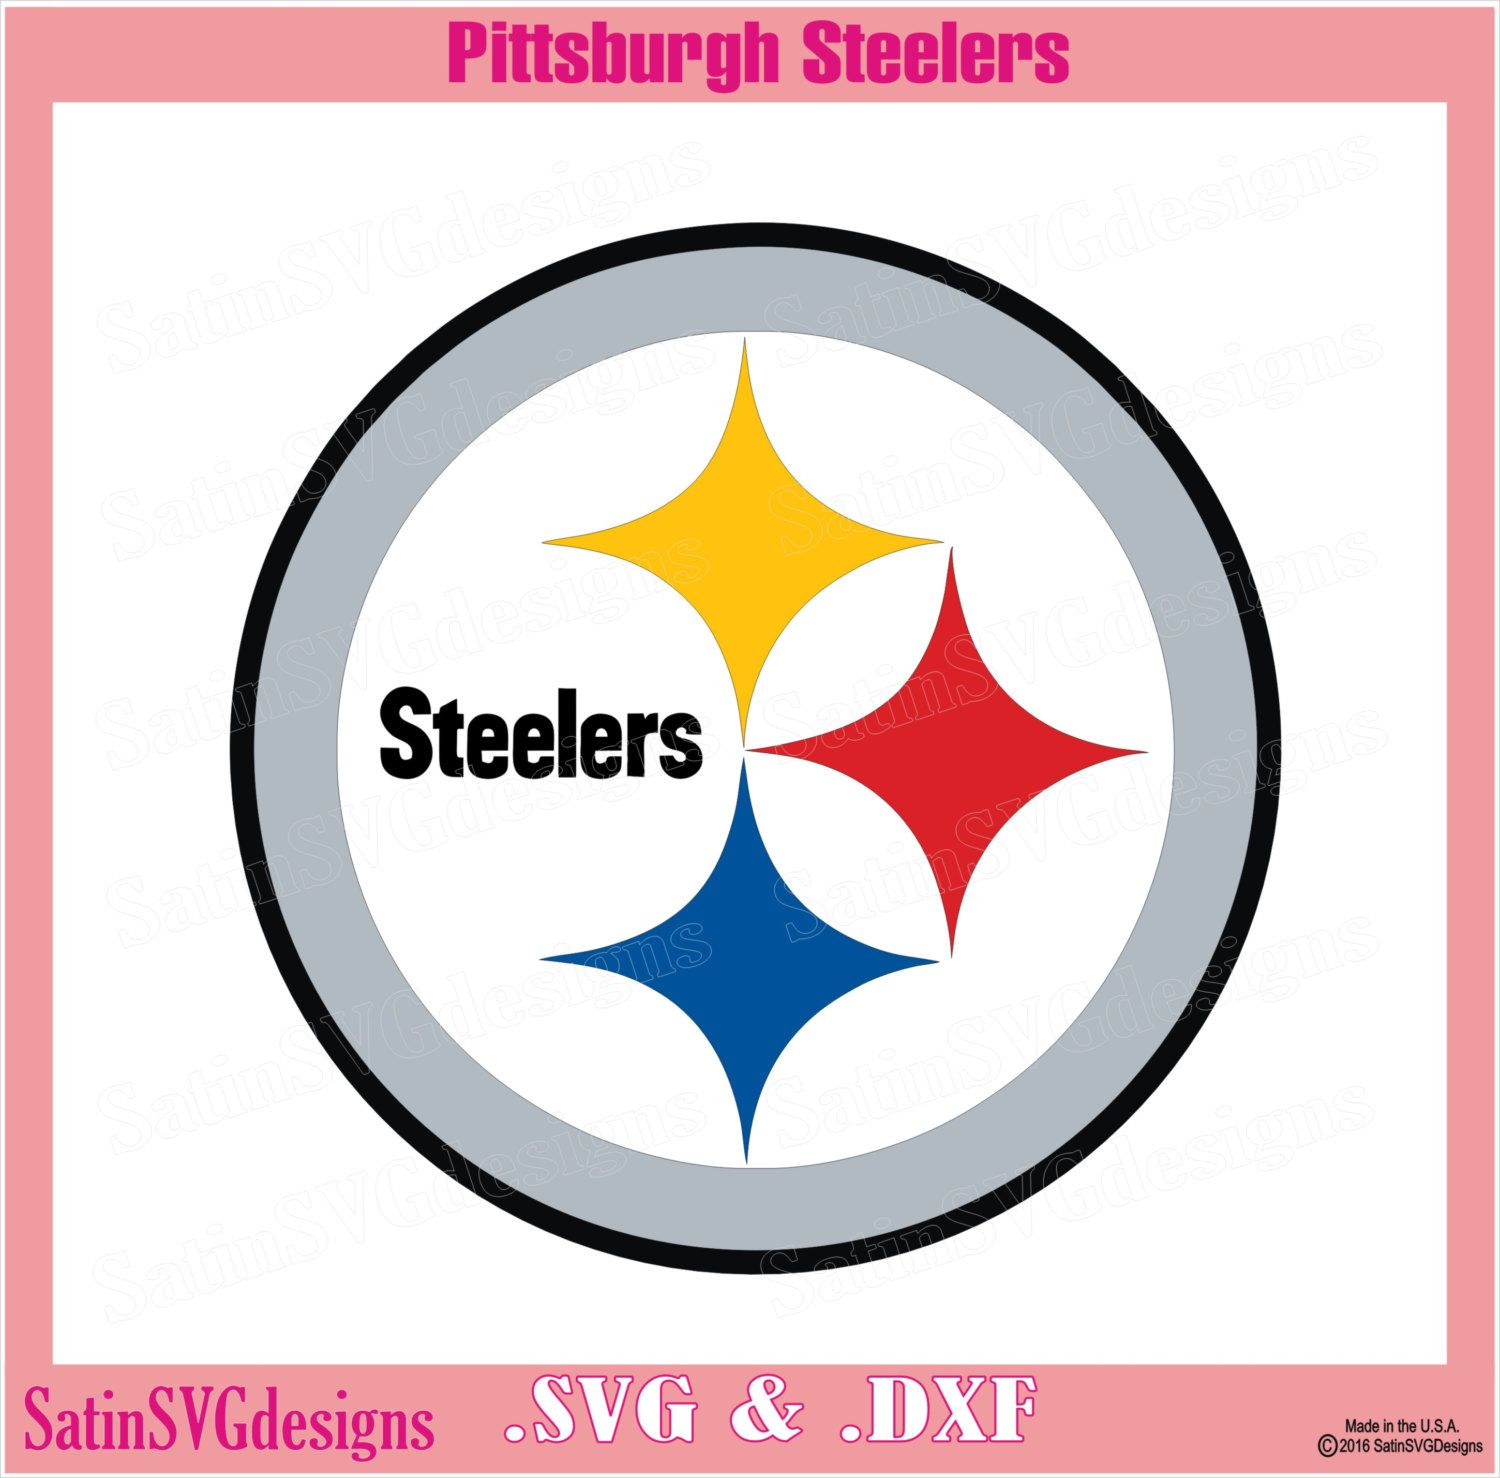 Pittsburgh Steelers Logo Wallpaper HD (With images